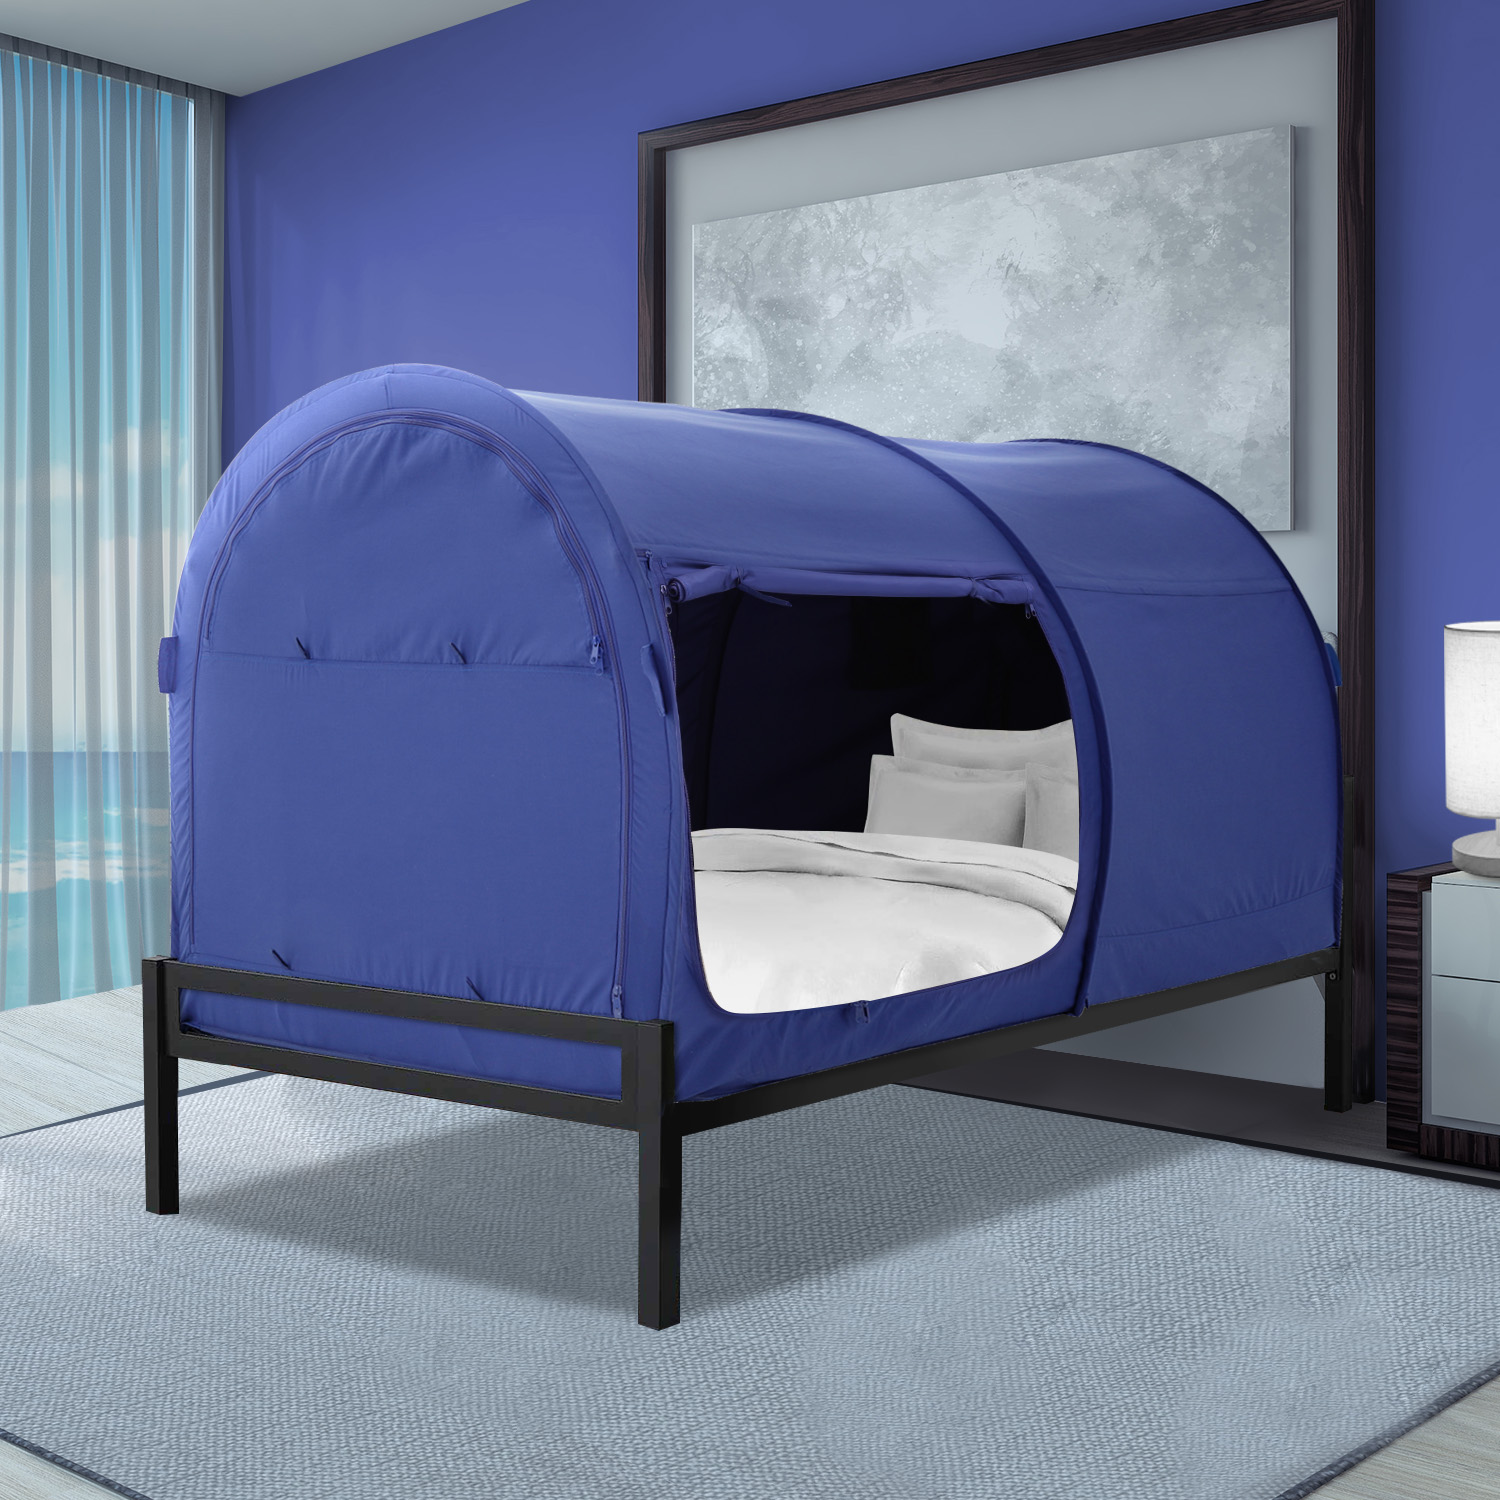 Bed Tent Twin Size For Girls Boys Navy By Alvantor